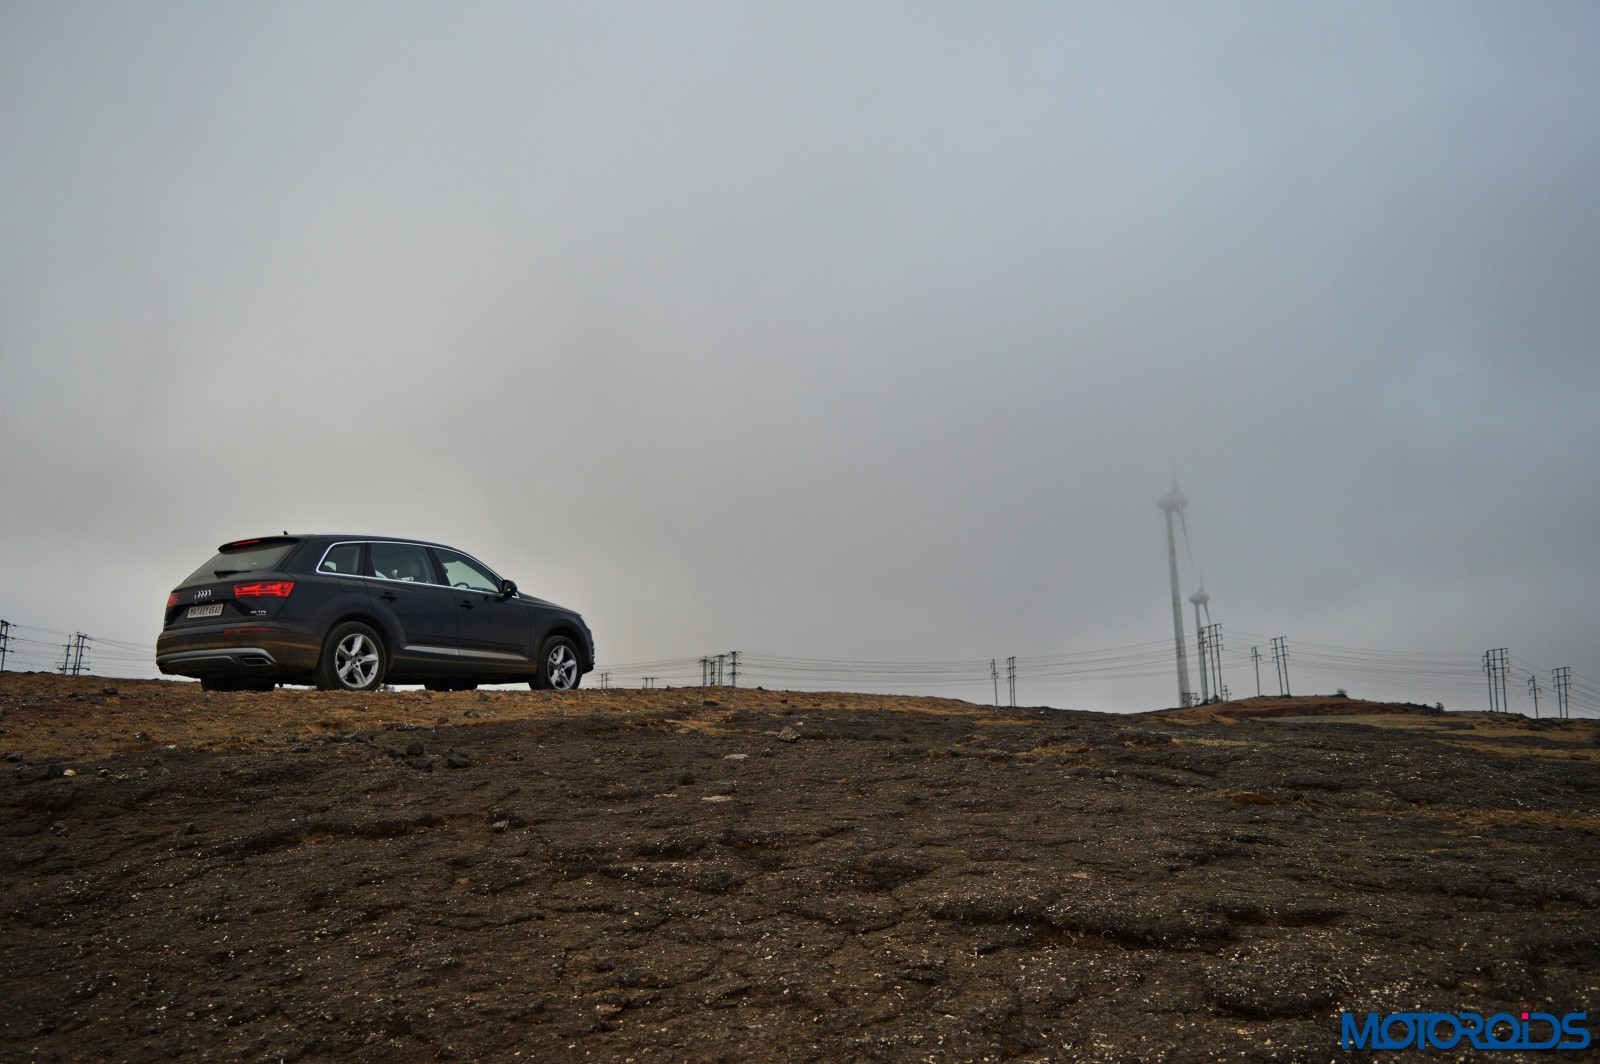 Audi Q7 - Weekend Travelogue (26)